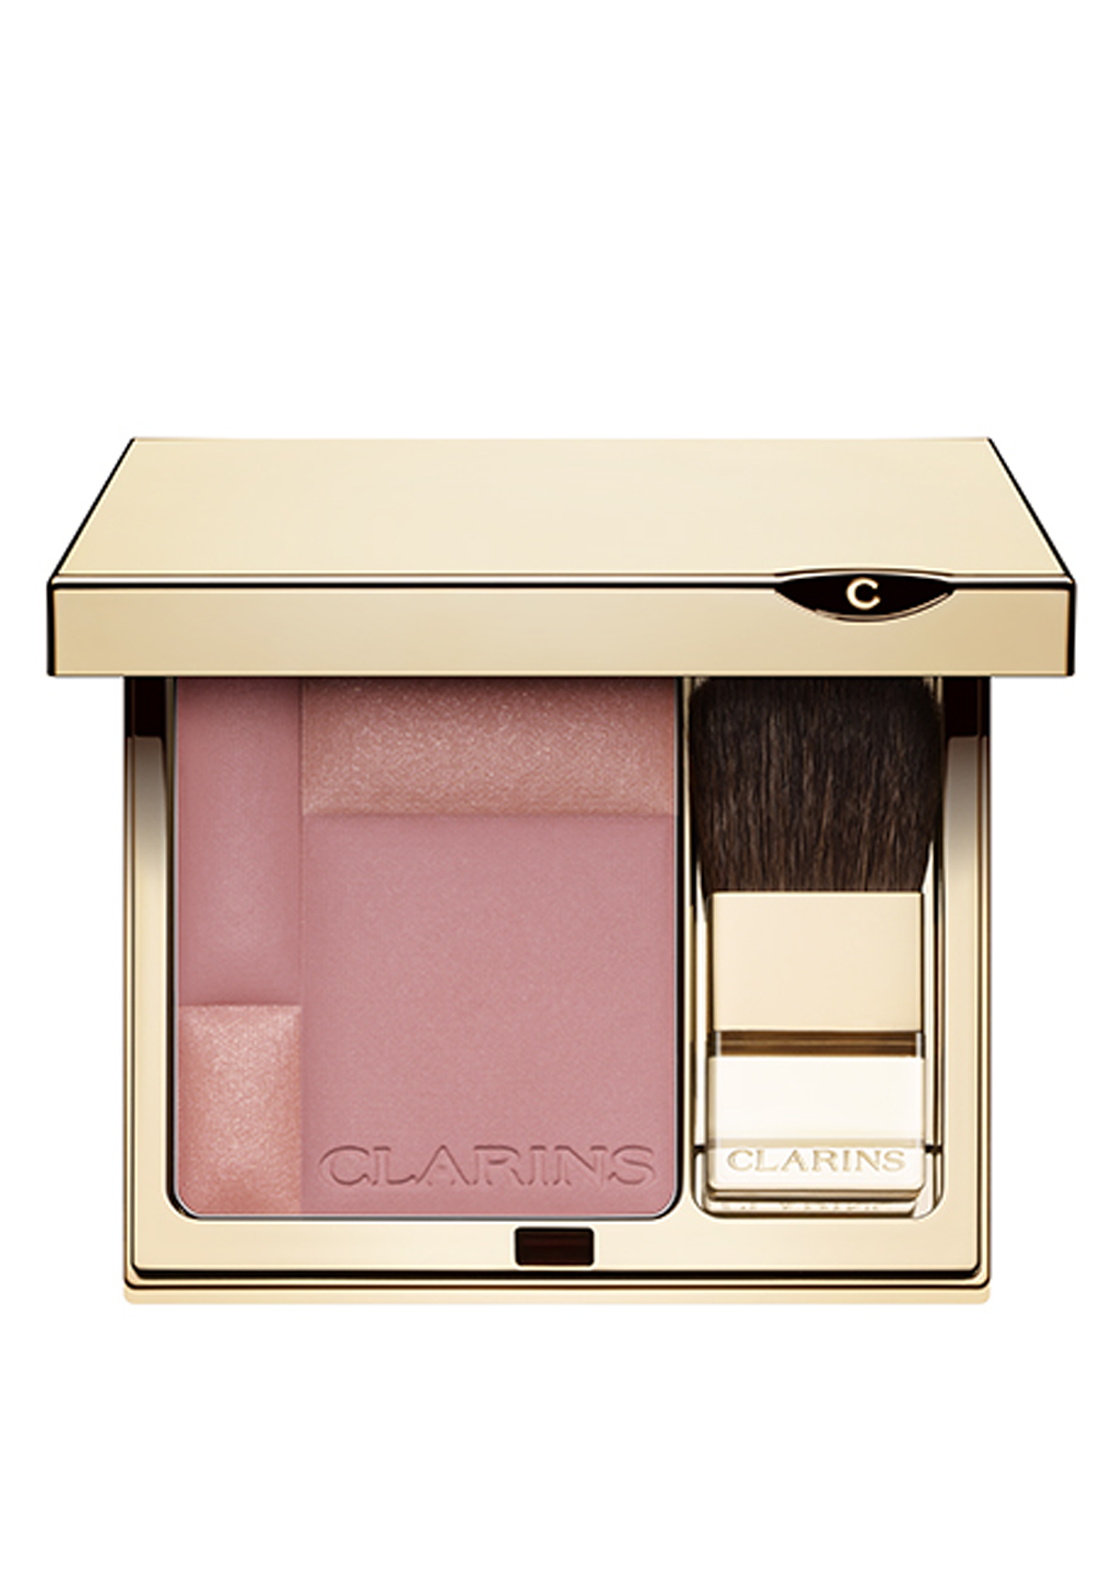 Clarins Blush Prodige Illuminating Cheek Colour, 08 Sweet Rose